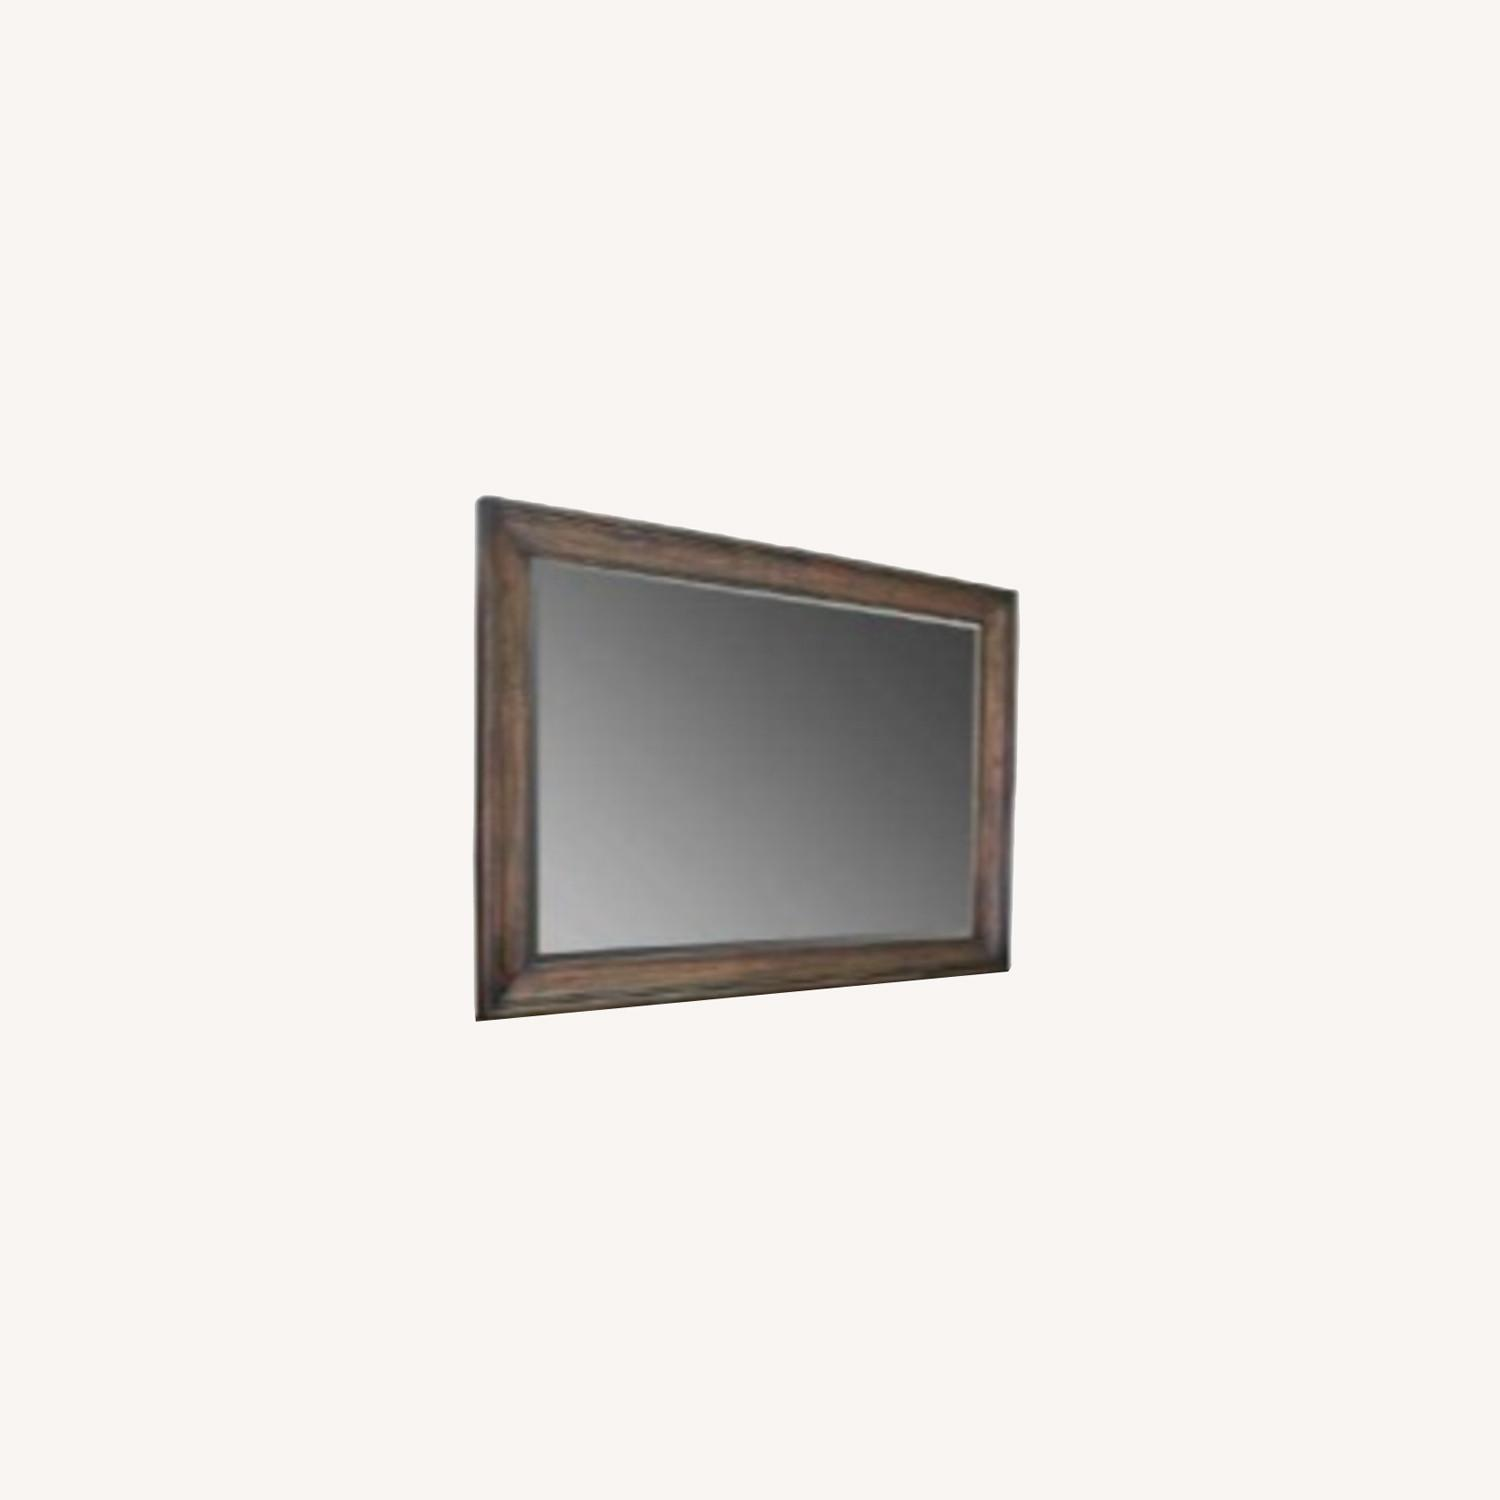 Mirror In Weathered Burnished Brown Finish - image-4